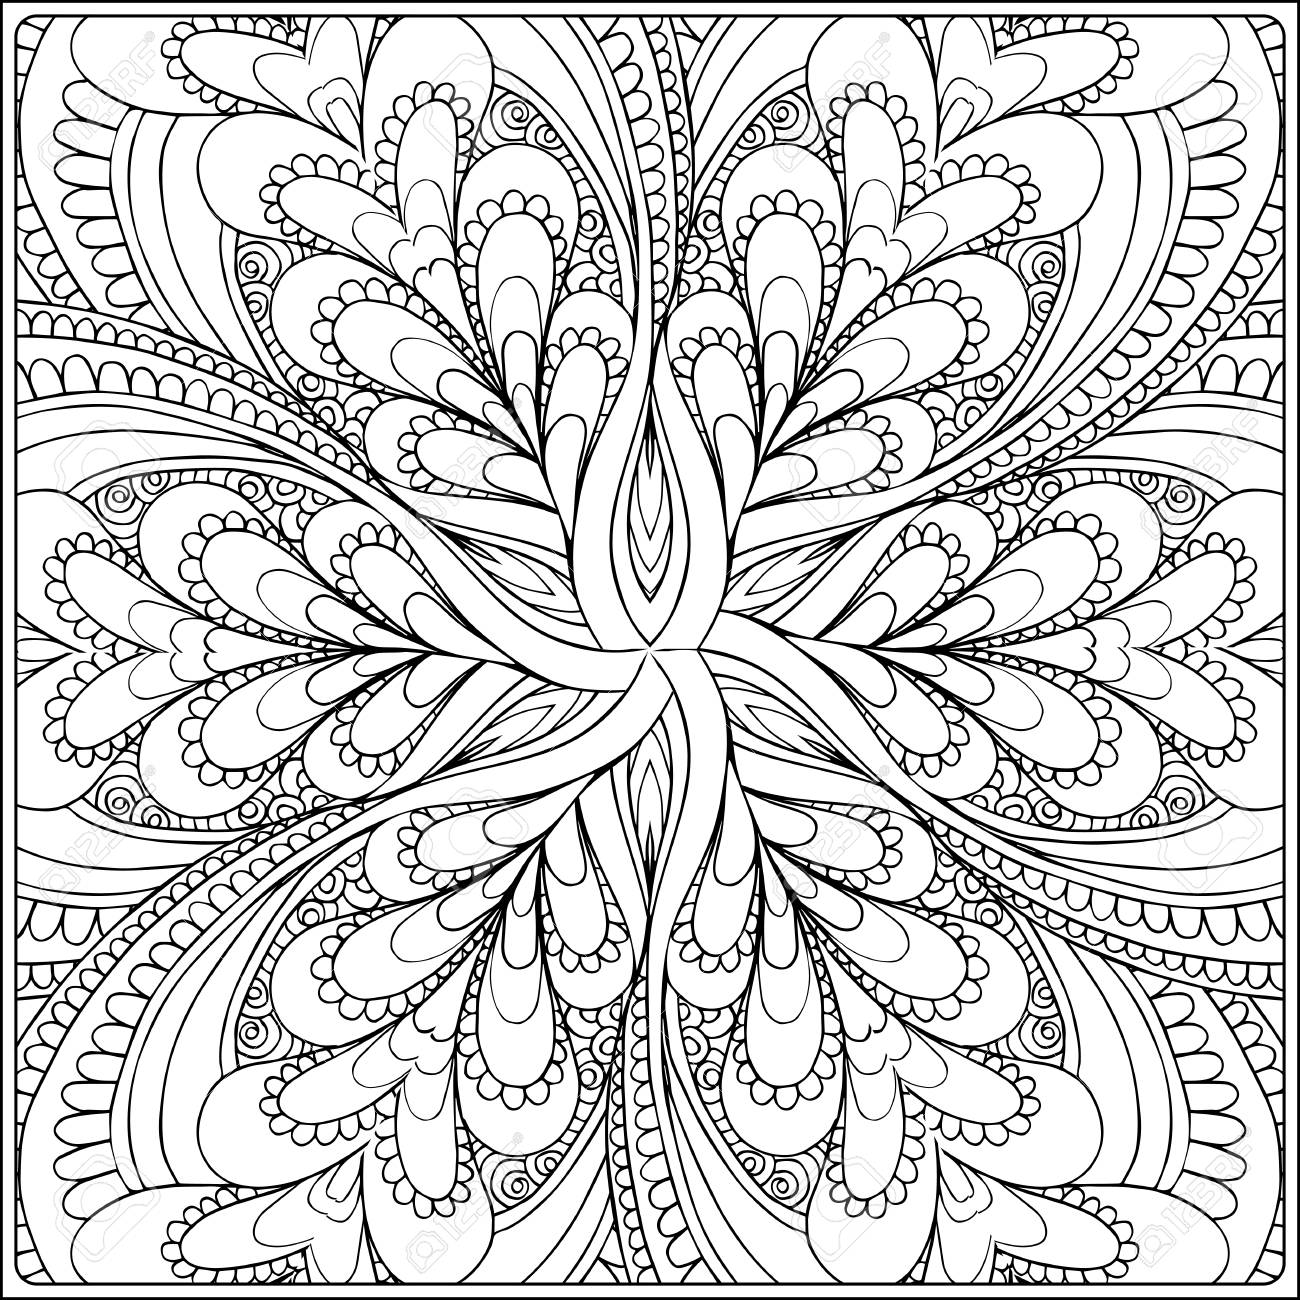 seamless pattern. Outline hand drawing. Good for coloring page for the adult coloring book. Stock vector illustration.Abstract vector decorative ethnic mandala black and white - 111921618